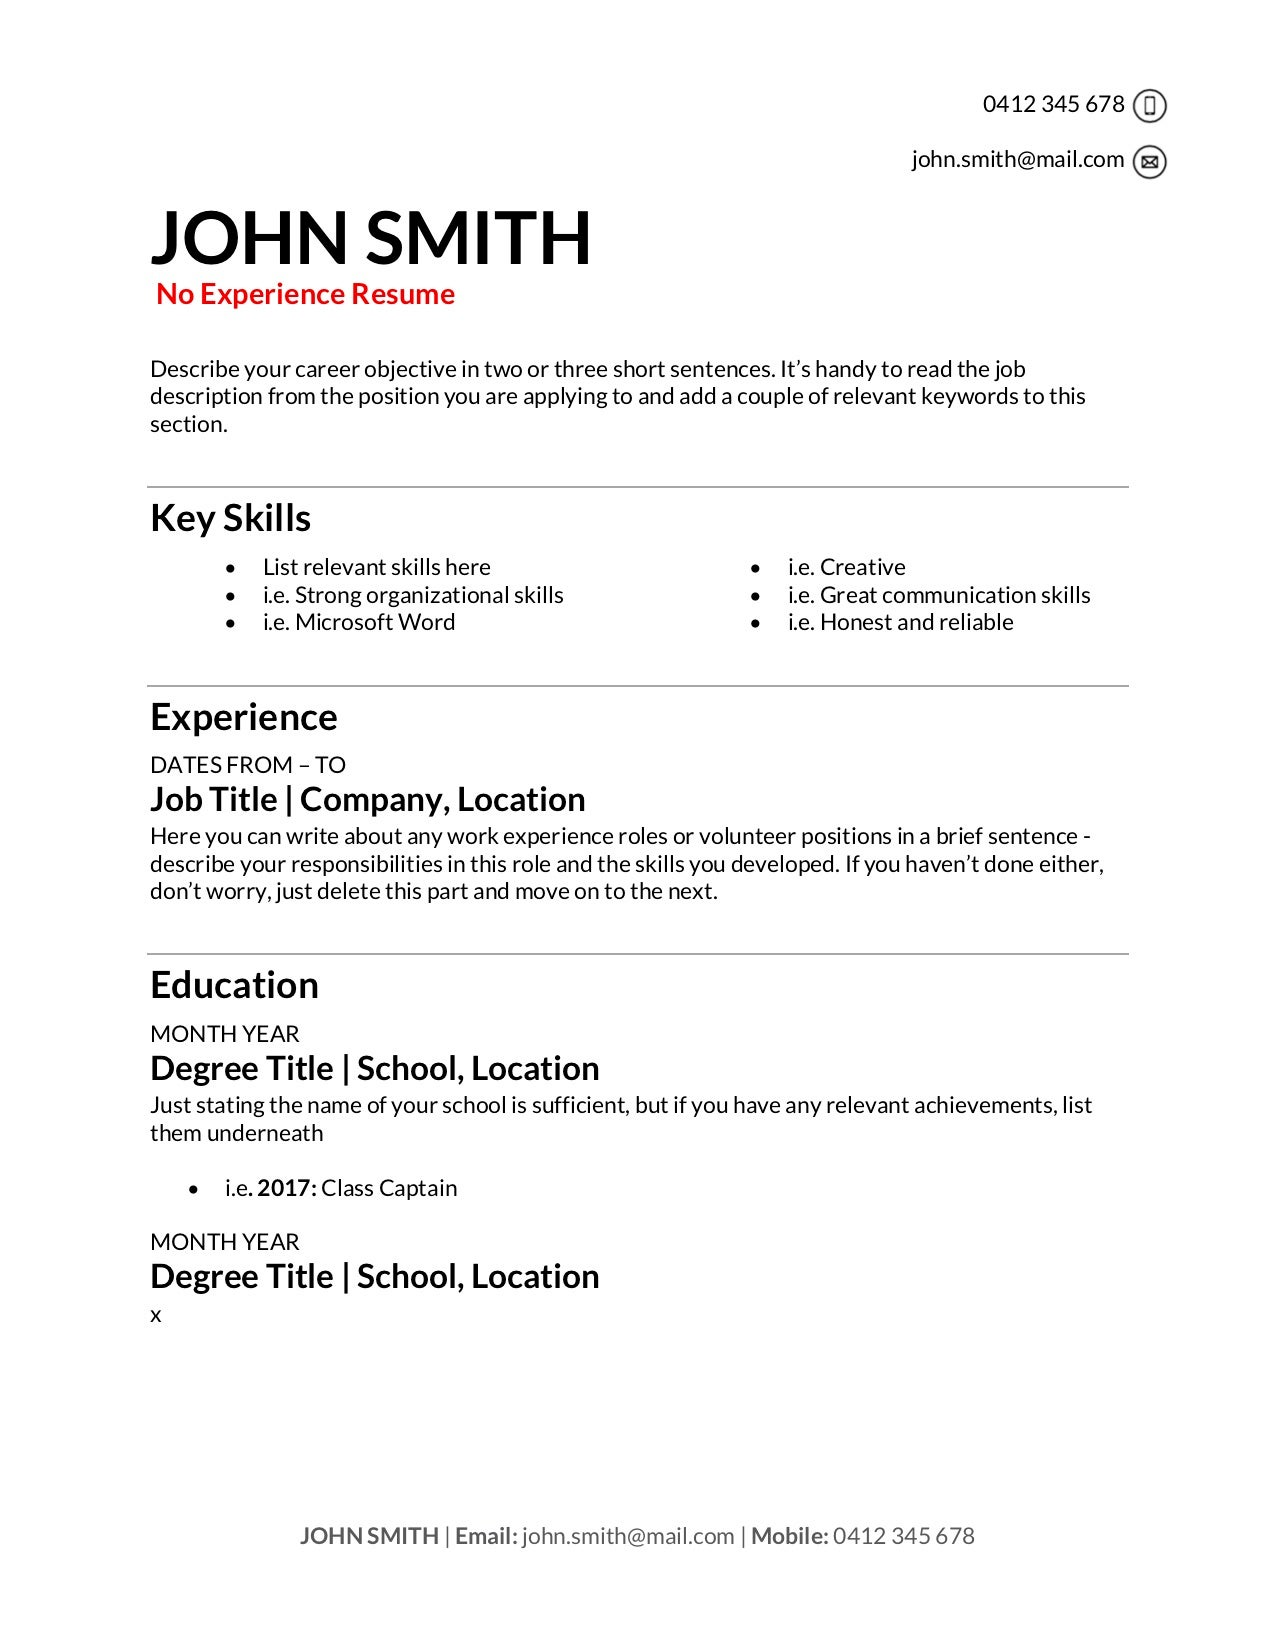 free resume templates to write in training au retail for high school student no Resume Retail Resume For High School Student